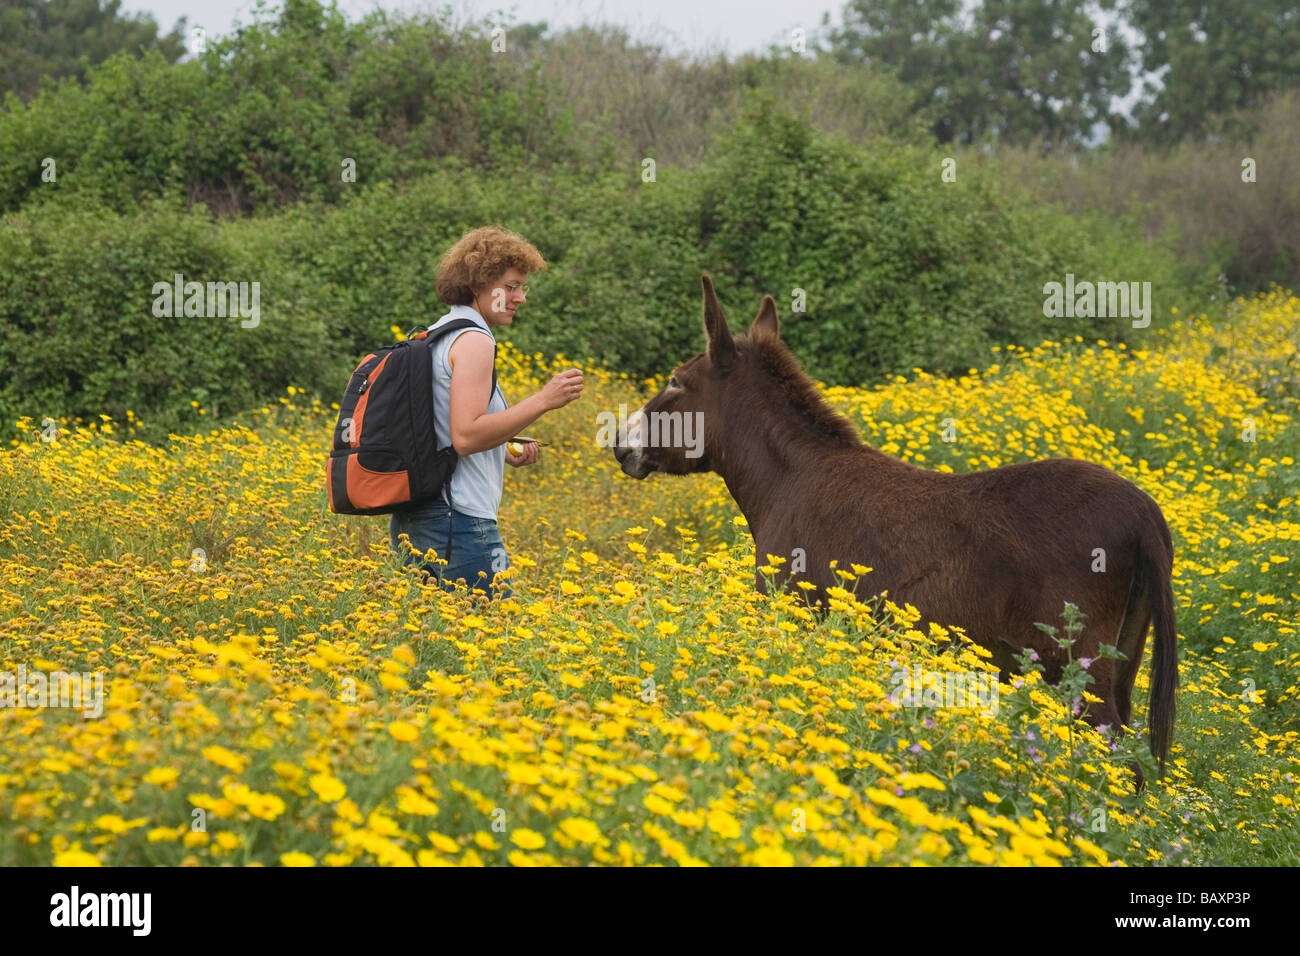 Encounter with a donkey, woman hiking near the Baths of Aphrodite, Akamas Nature Reserve Park, South Cyprus, Cyprus - Stock Image